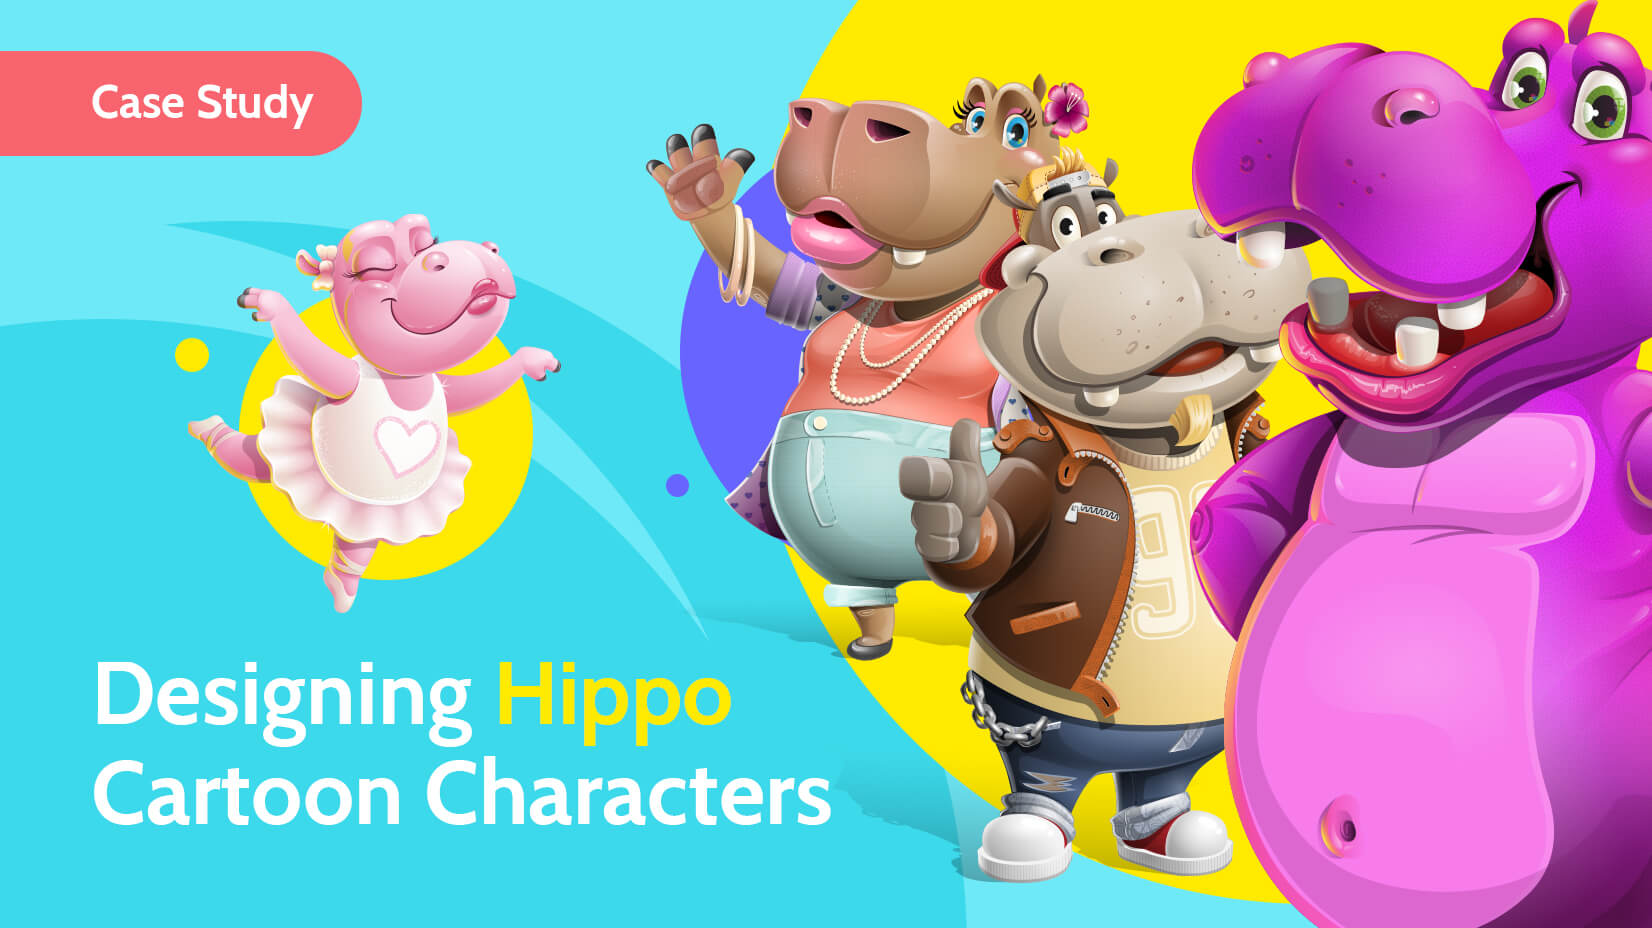 Designing Hippo Cartoon Characters: a Case Study by GraphicMama